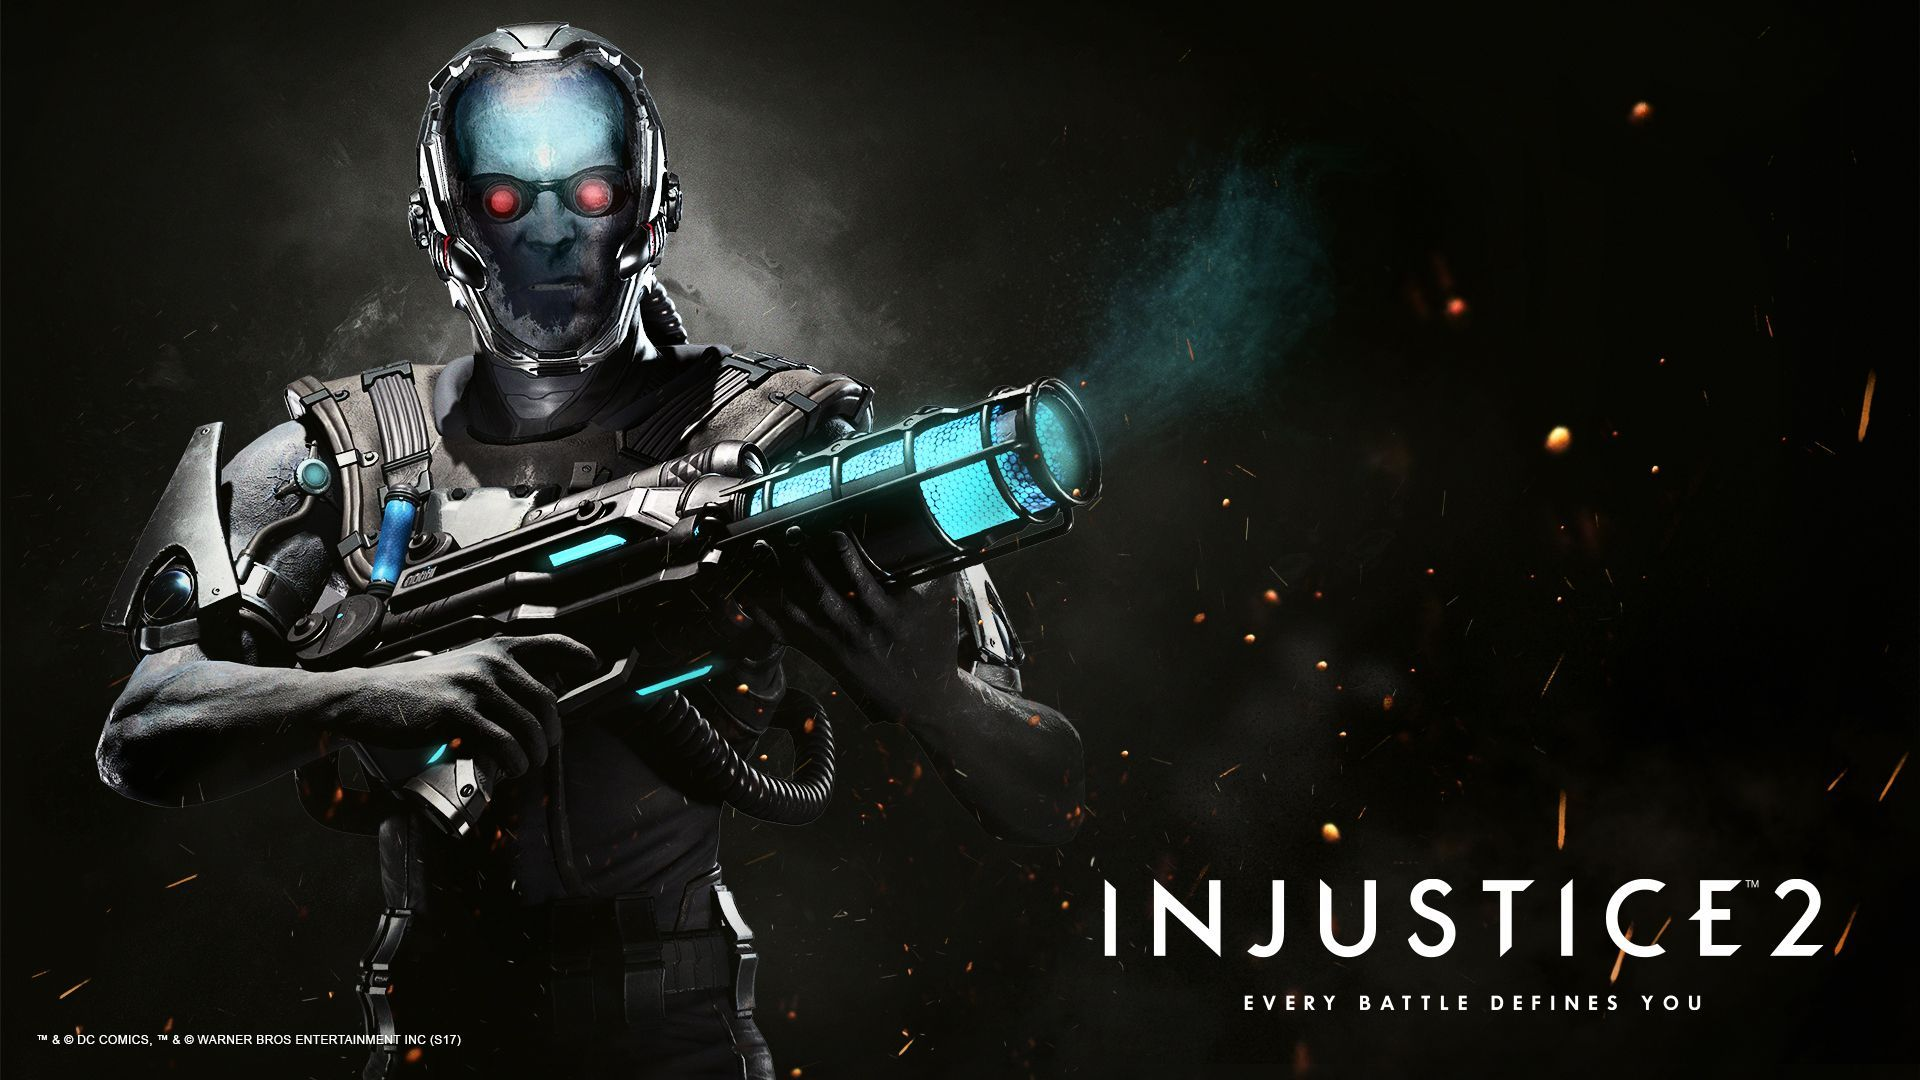 Injustice2 mrfreeze wallpaper 1920x1080 88g 19201080 injustice2 mrfreeze wallpaper 1920x1080 88g 19201080 injustice 2 characters voltagebd Image collections